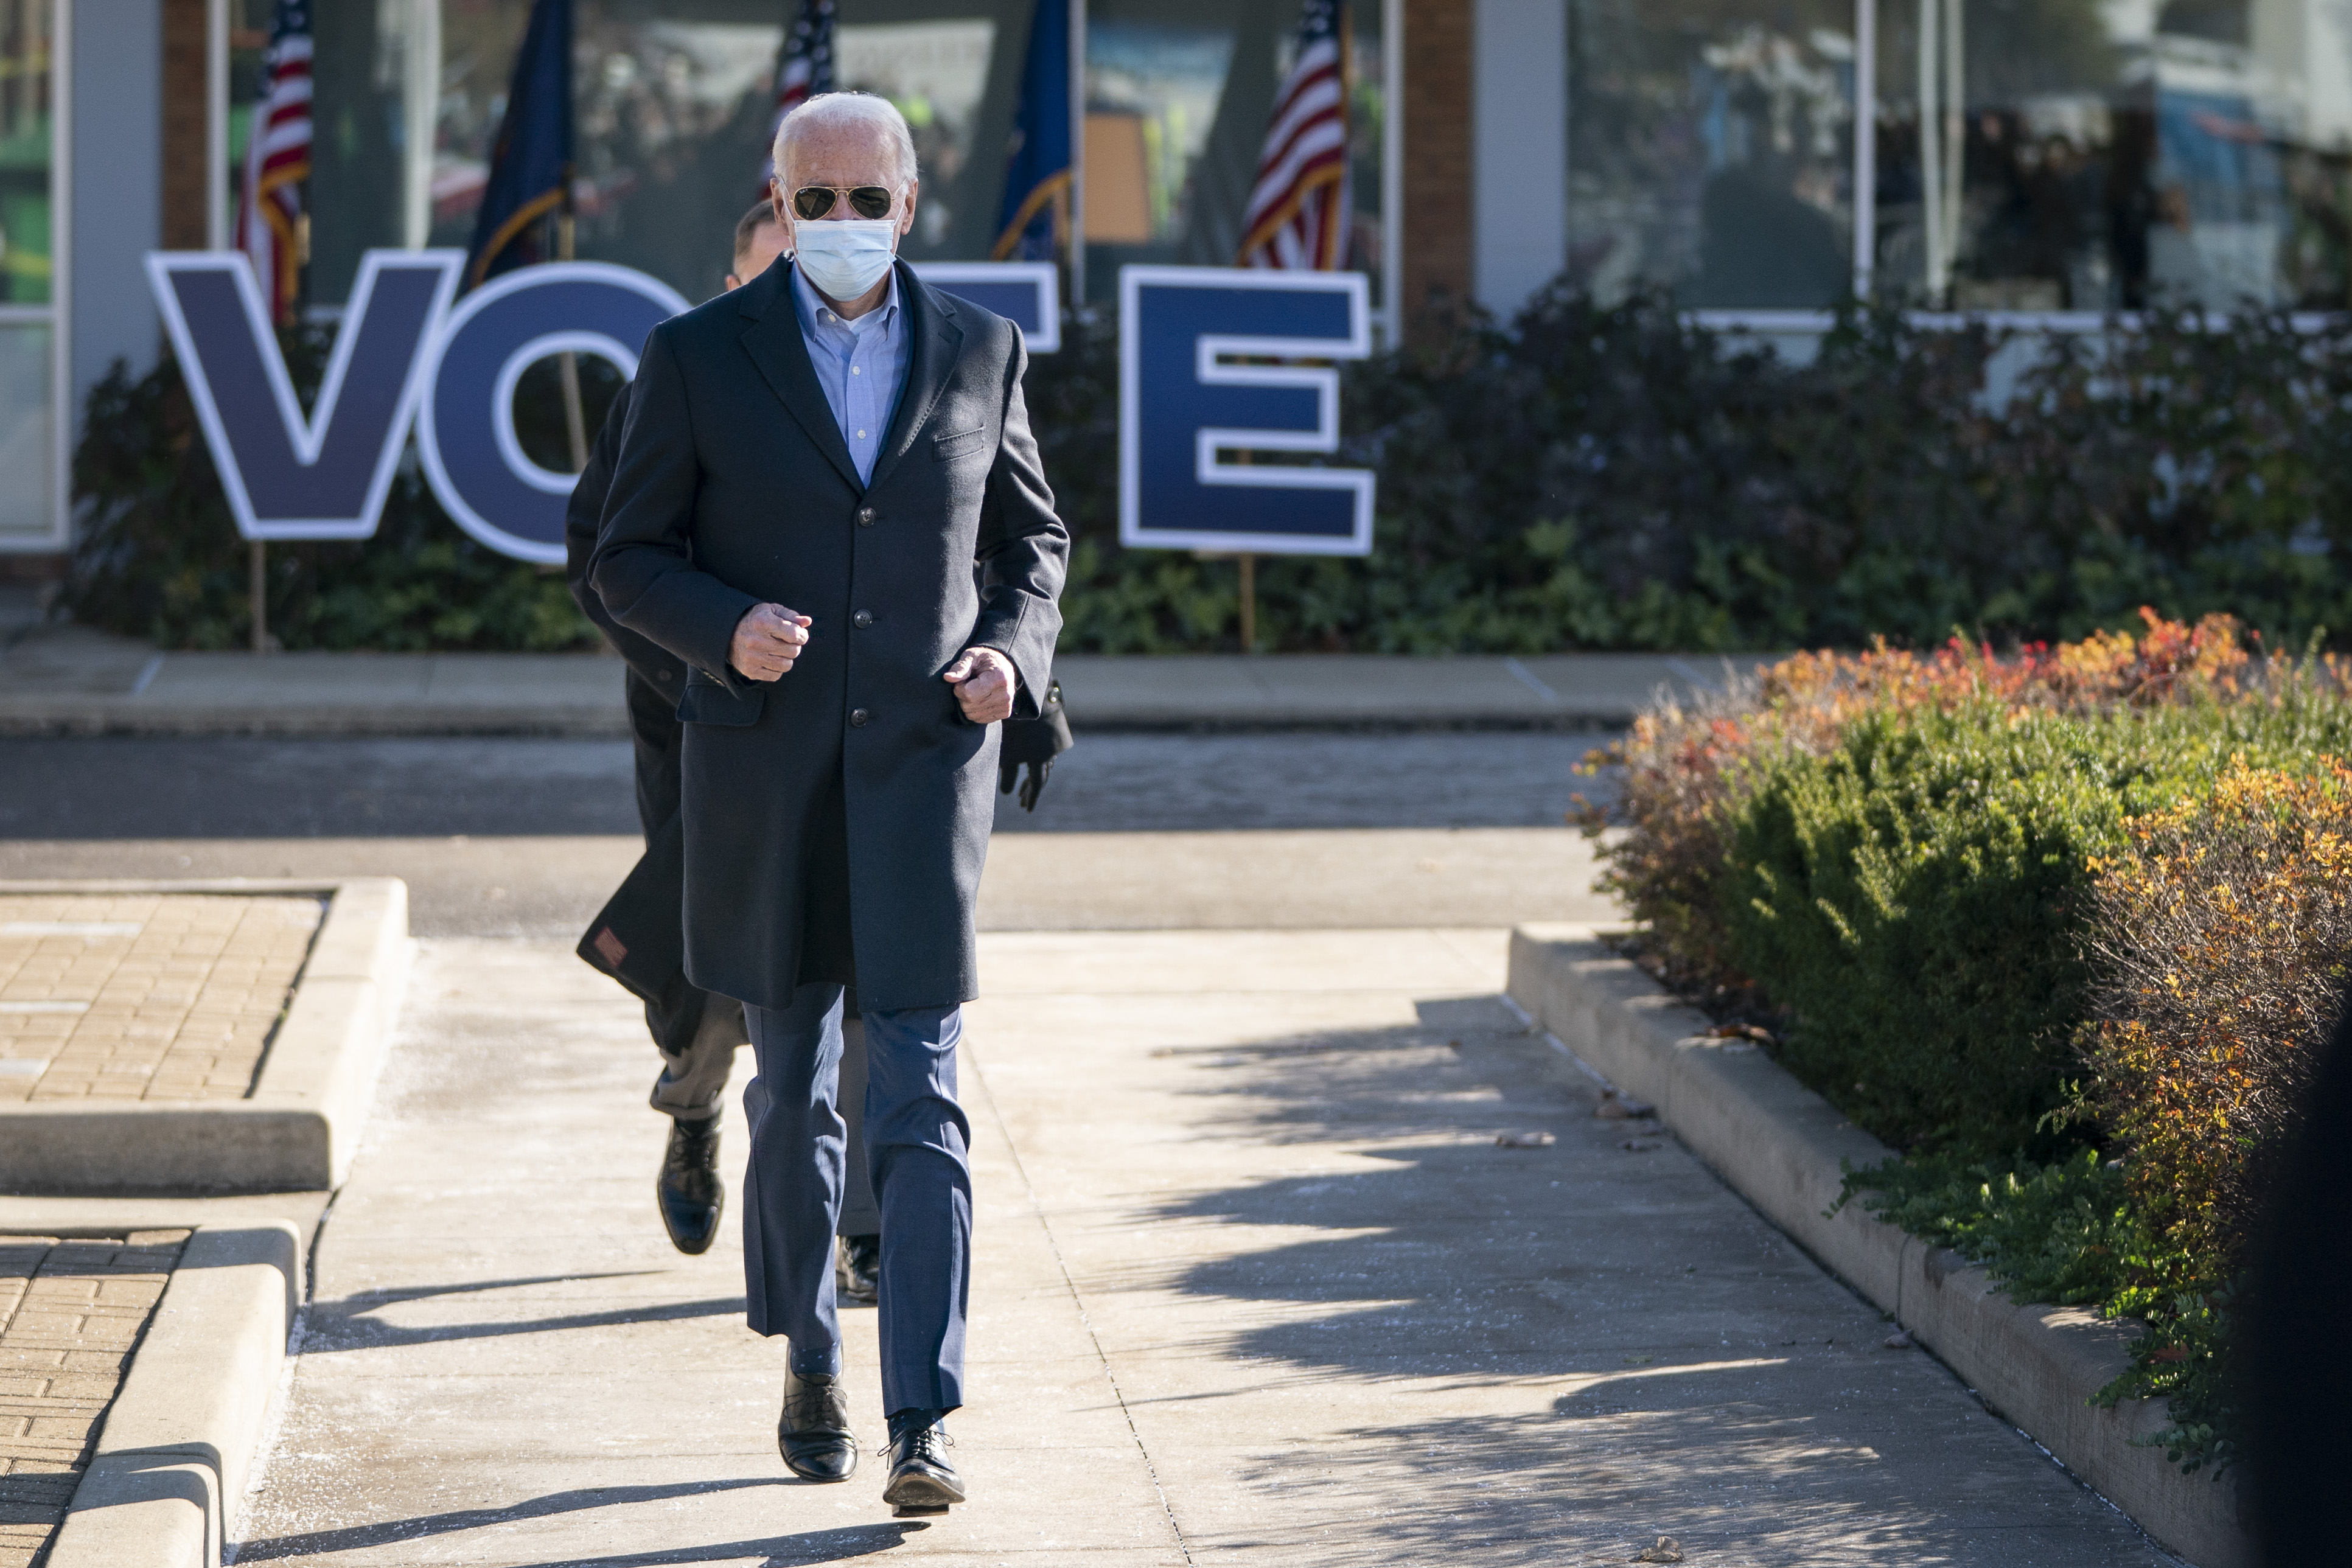 Democratic presidential nominee Joe Biden arrives to speak at a campaign stop at Community College of Beaver County on November 02, 2020 in Monaca, Pennsylvania.